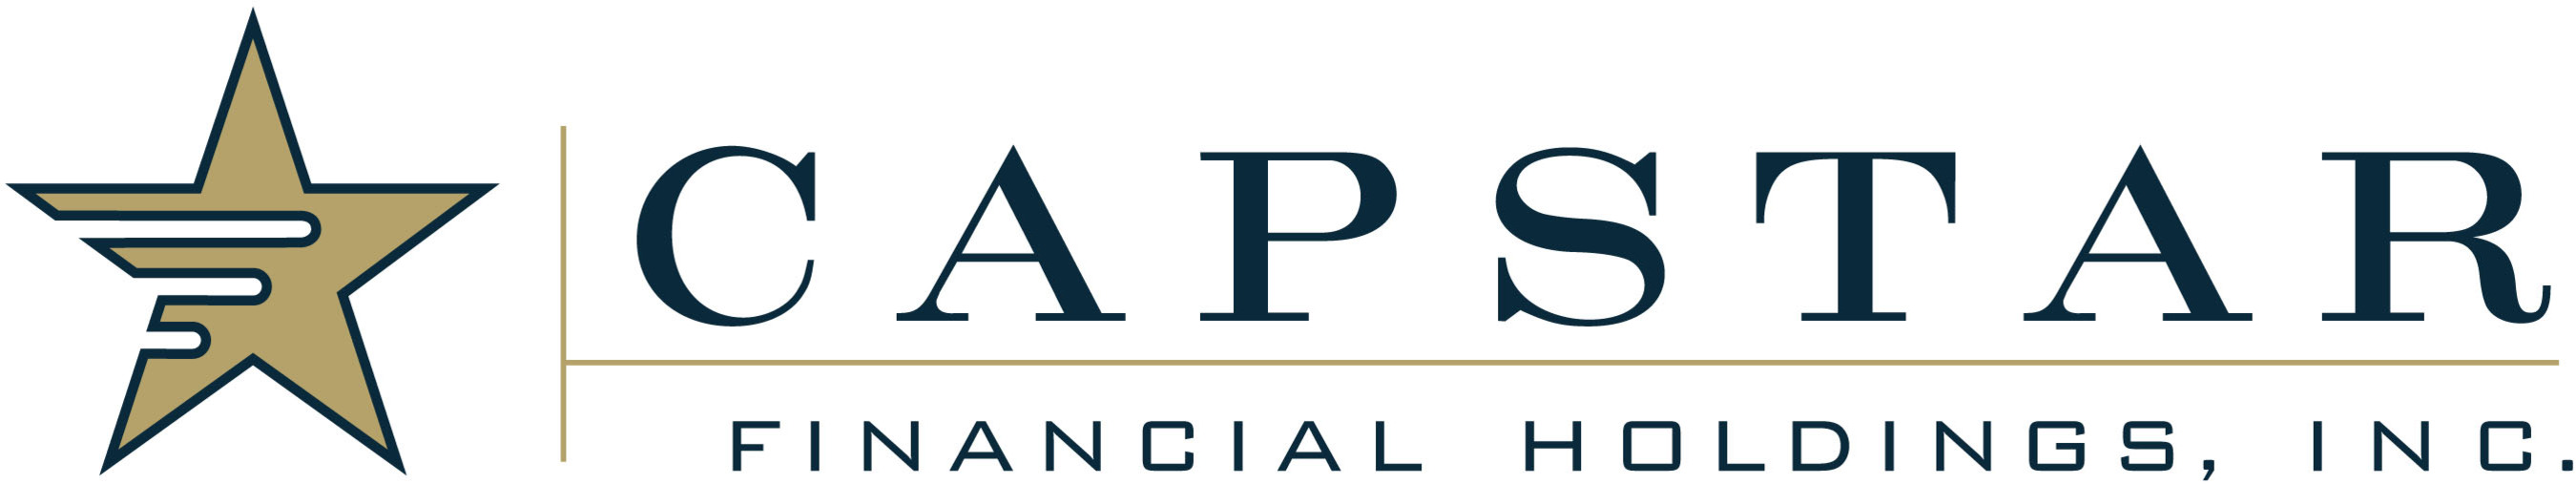 CapStar Financial Holdings, Inc. Logo